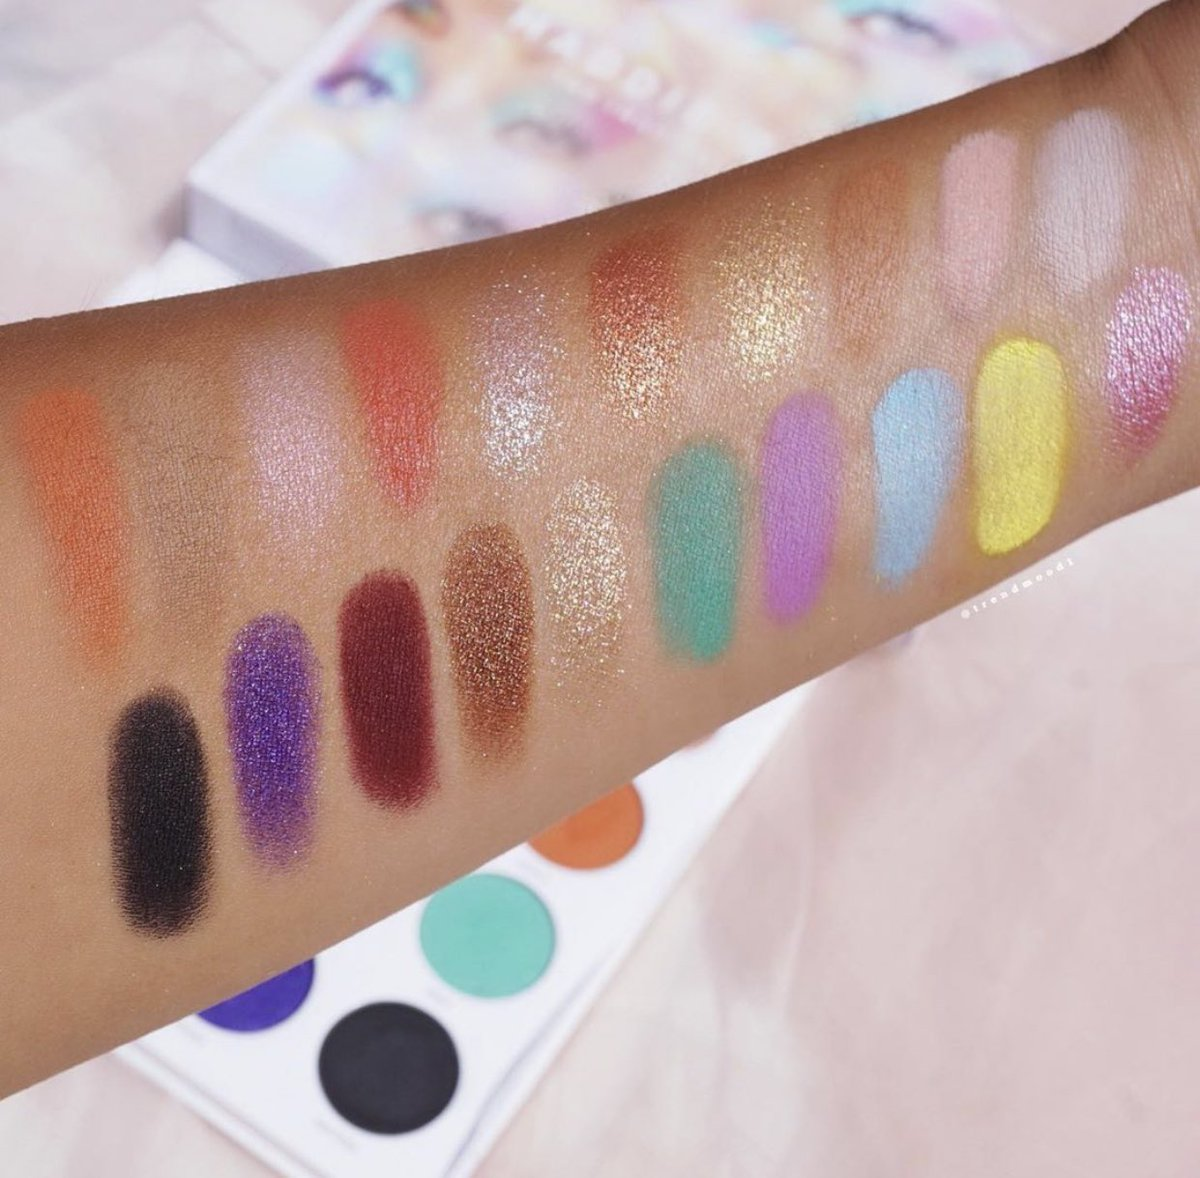 Morphe X Maddie Ziegler The Imagination Palette Blissme Maddie ziegler is an extremely talented young dancer from pennsylvania, born on september 30 real name: morphe x maddie ziegler the imagination palette